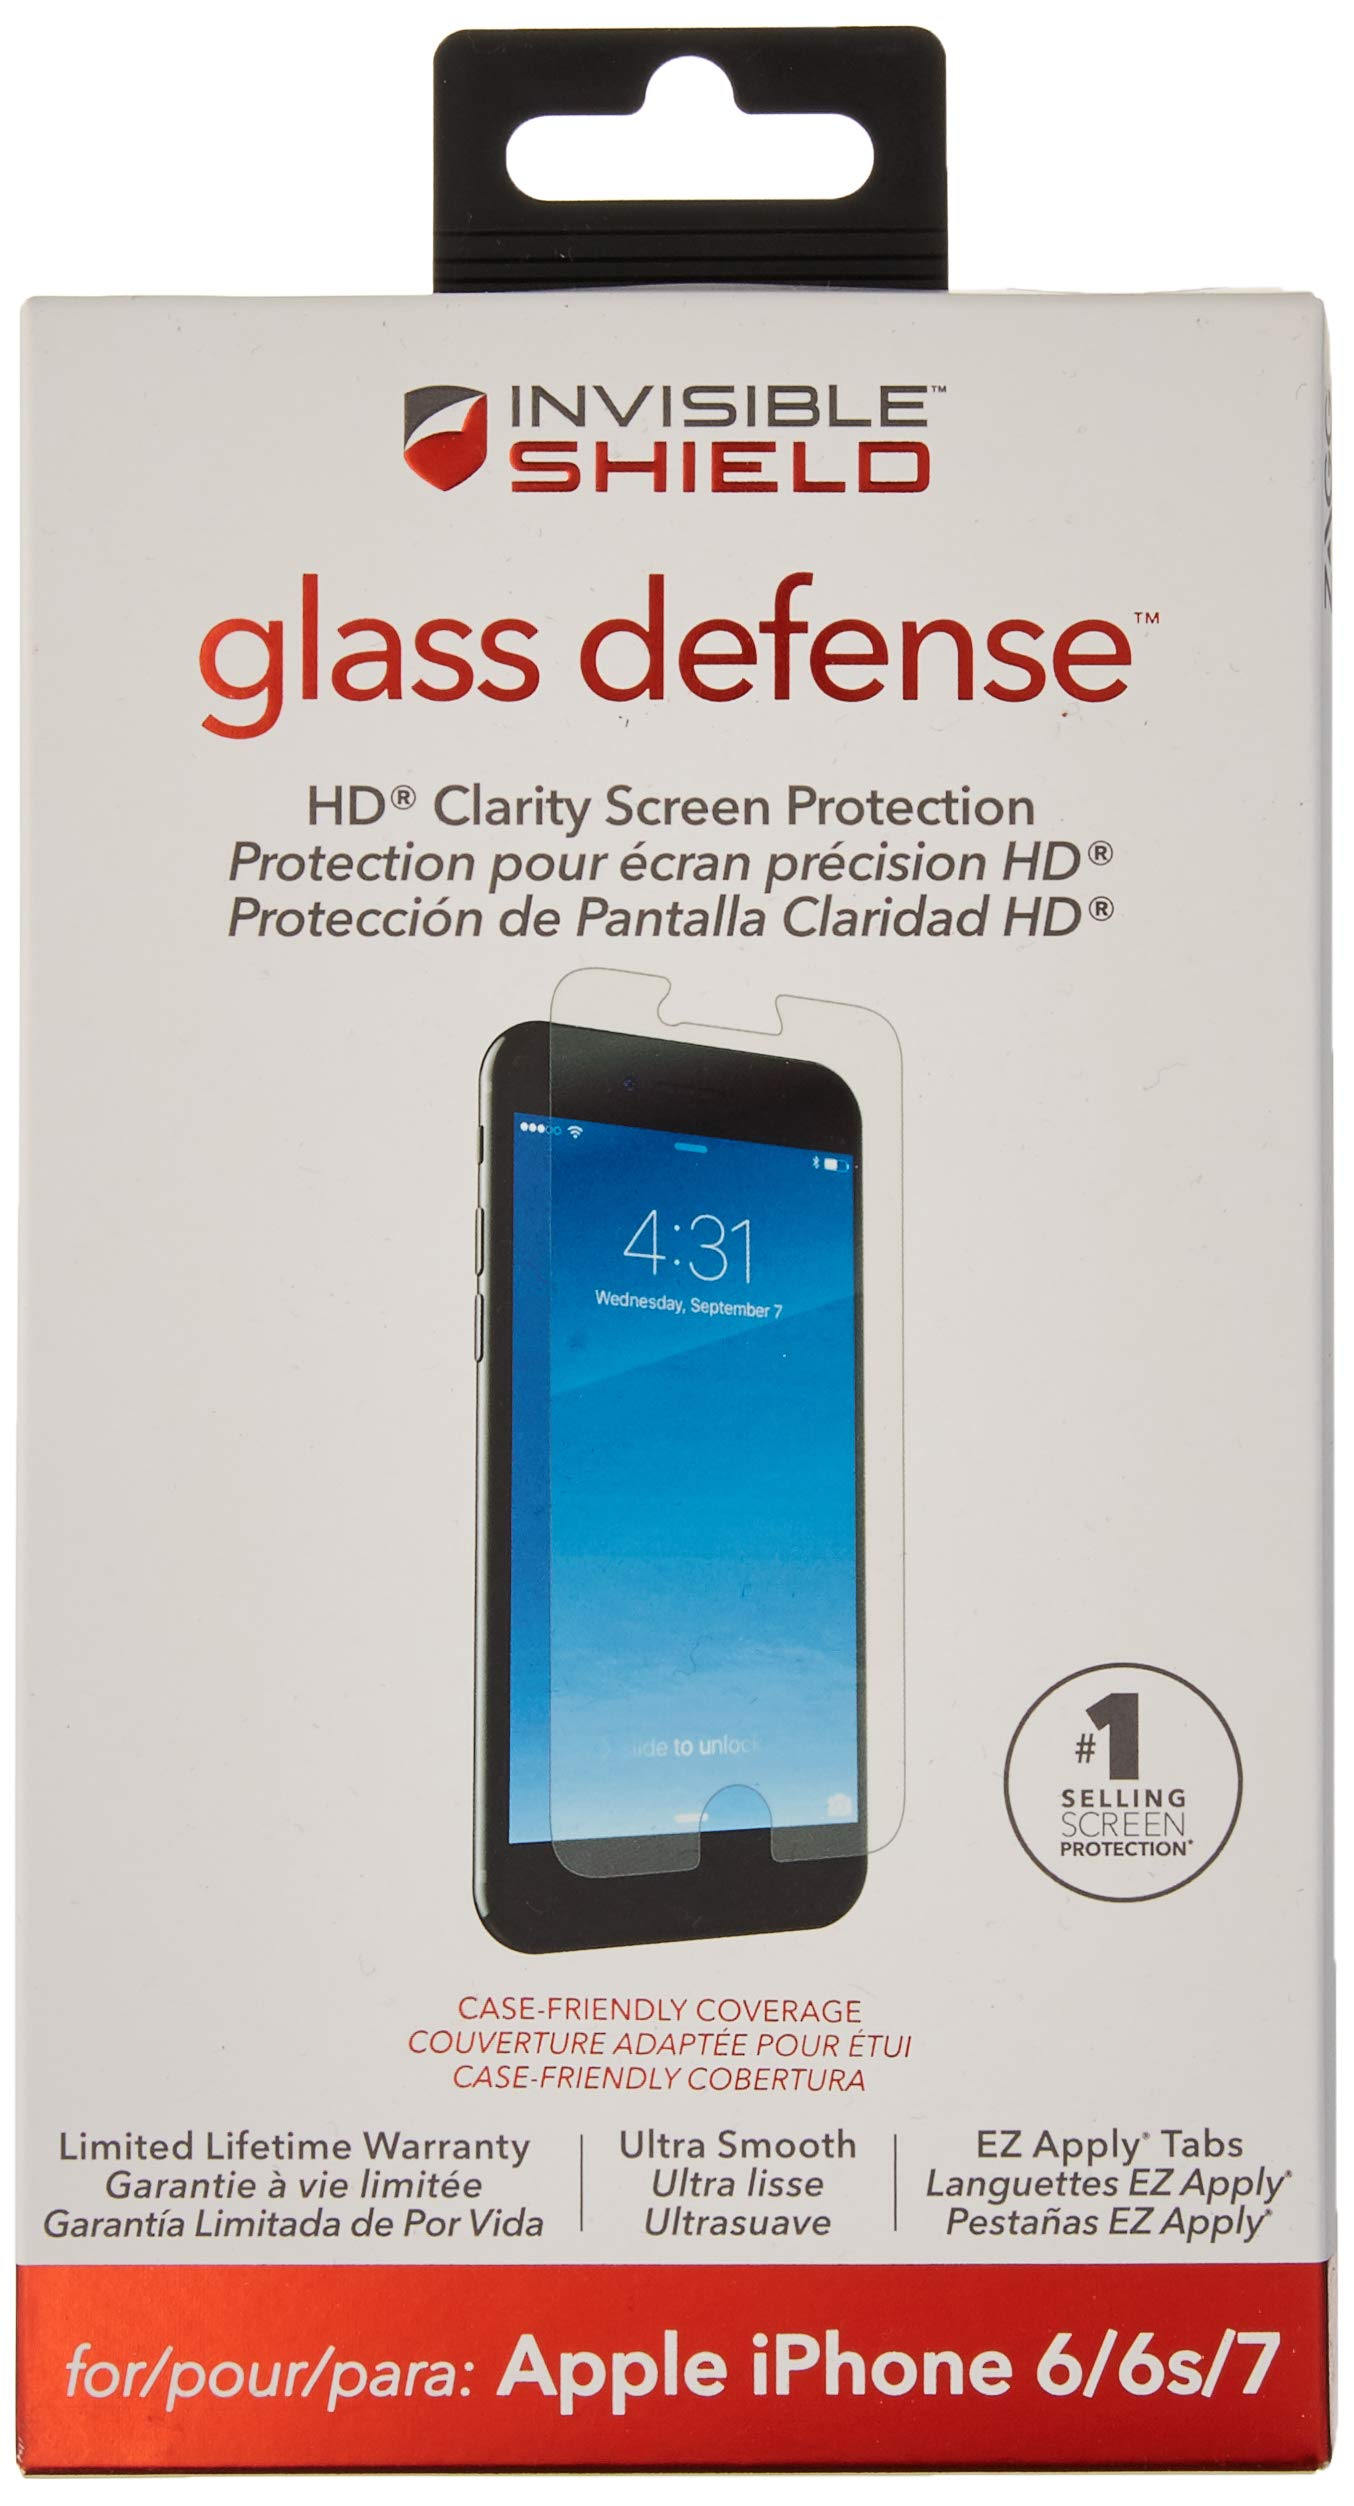 ZAGG InvisibleShield Glass Defense – Screen Protector for Apple iPhone 7, iPhone 6s, iPhone 6